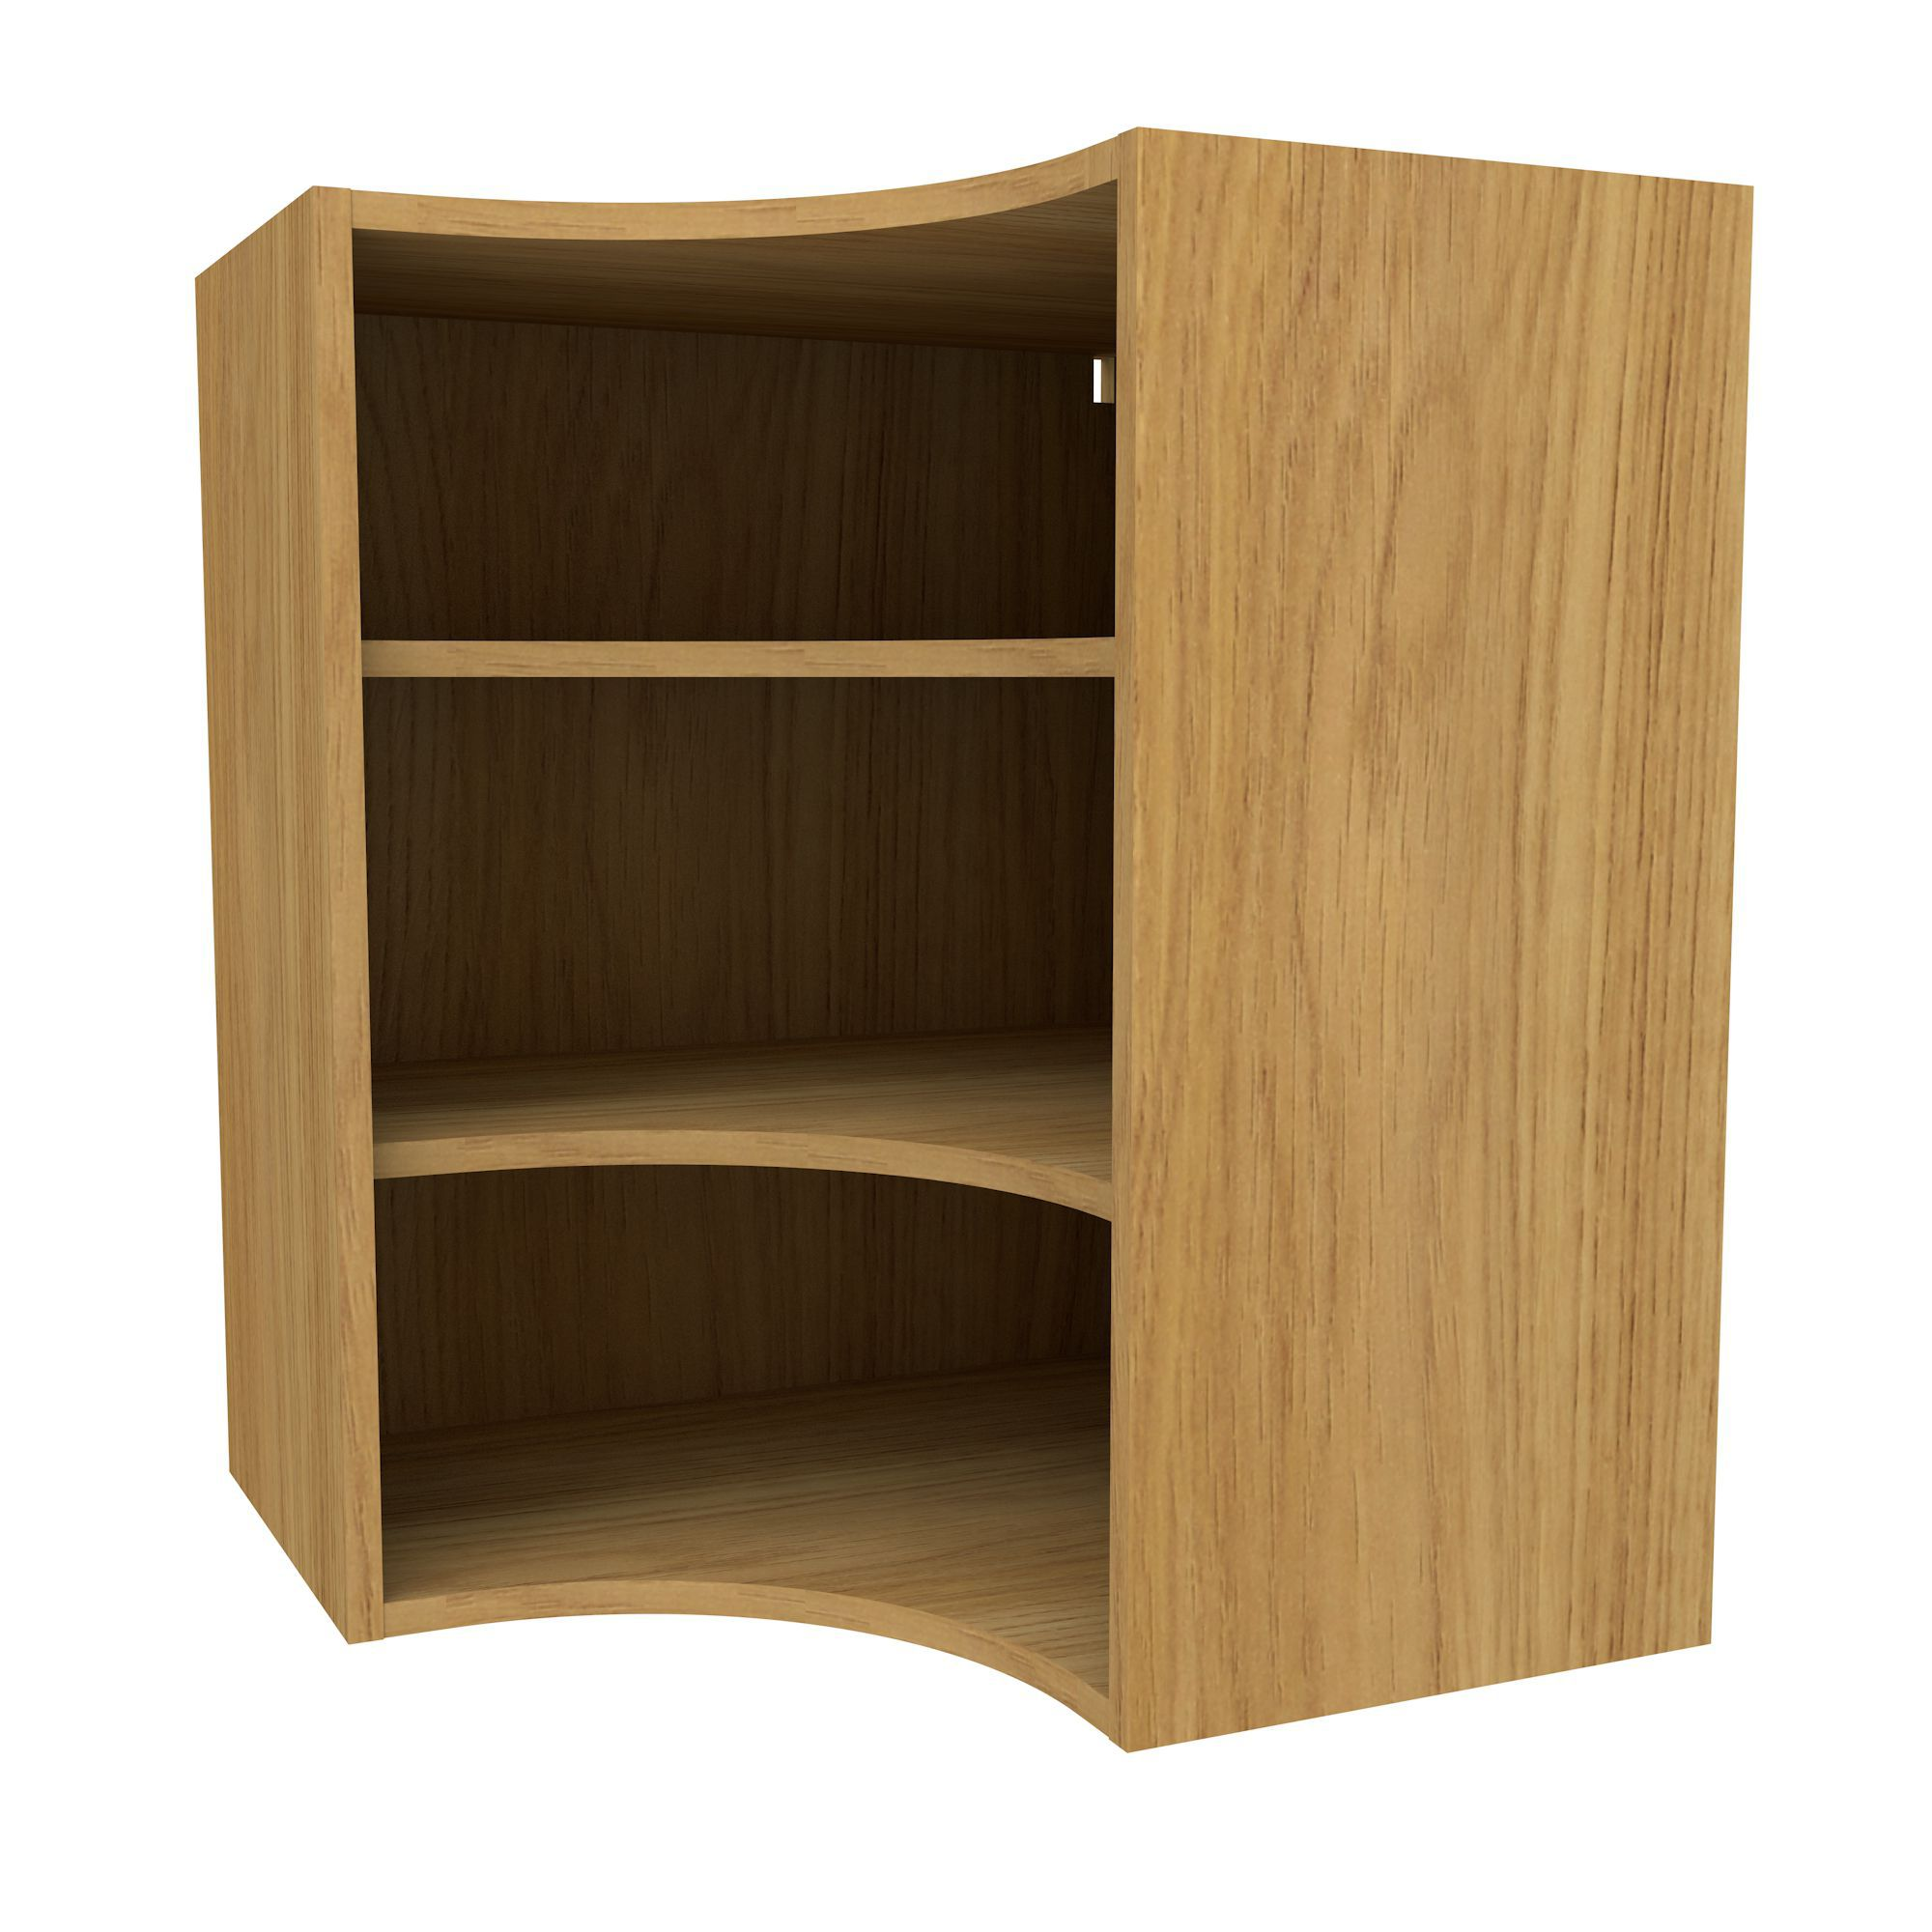 Oak Effect Kitchen Cabinets: Cooke & Lewis Oak Effect Deep Curved Corner Wall Cabinet